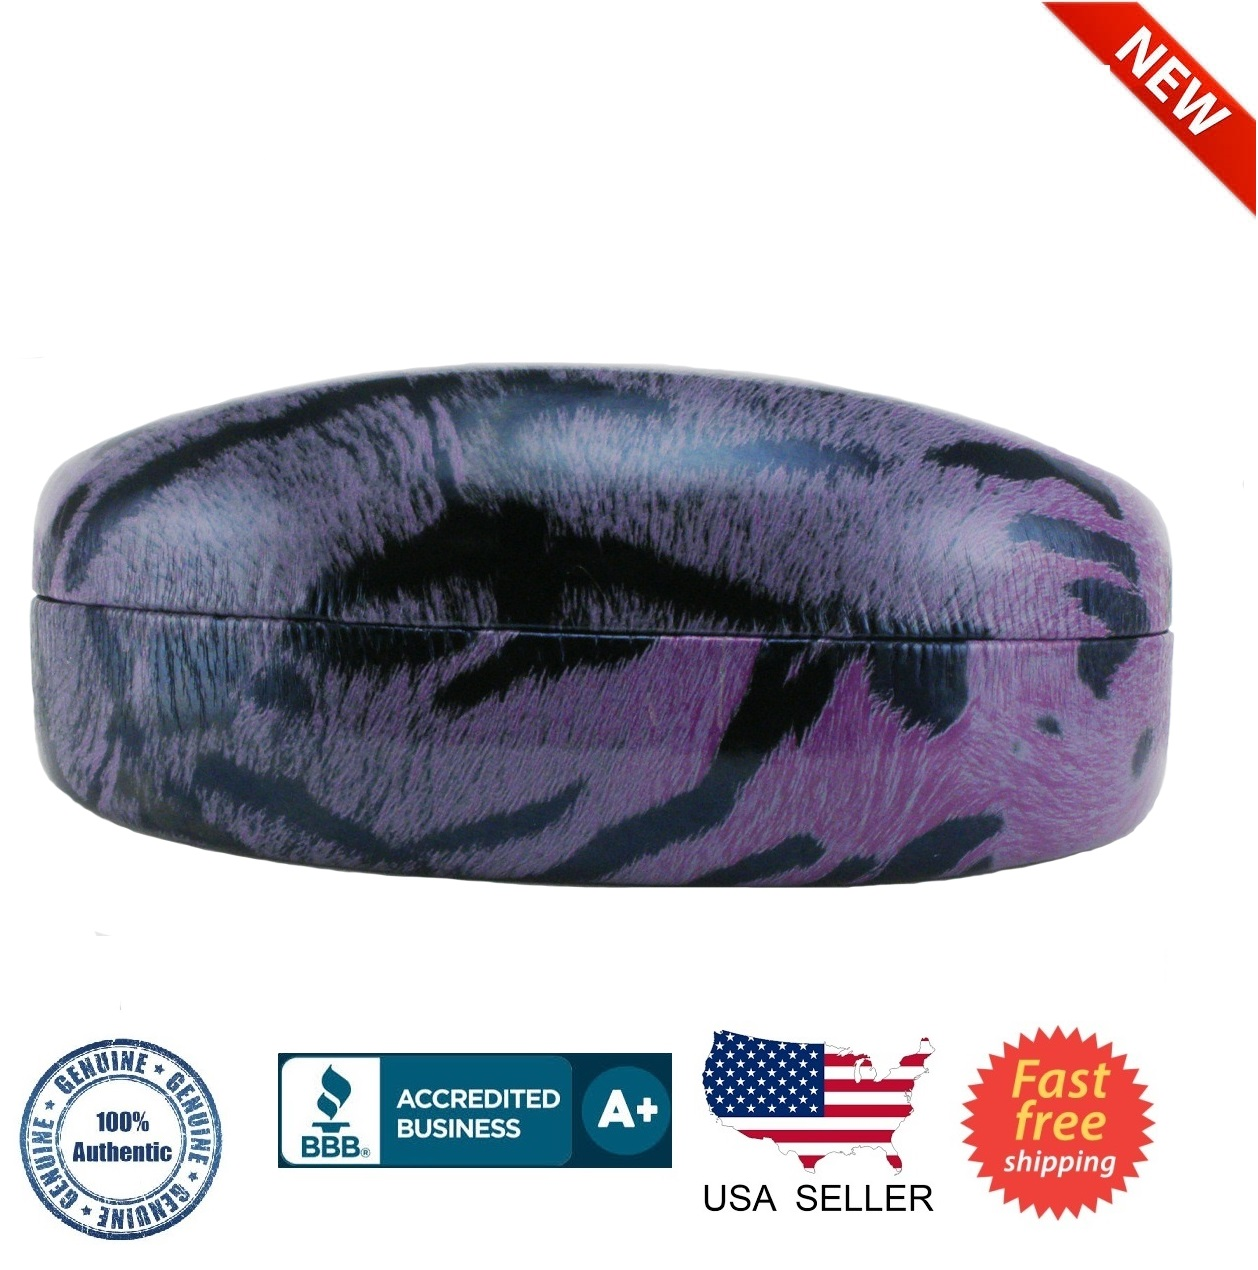 Eyevare-Extra-Large-Protective-Hard-Carrying-Case-for-All-Sunglasses thumbnail 20